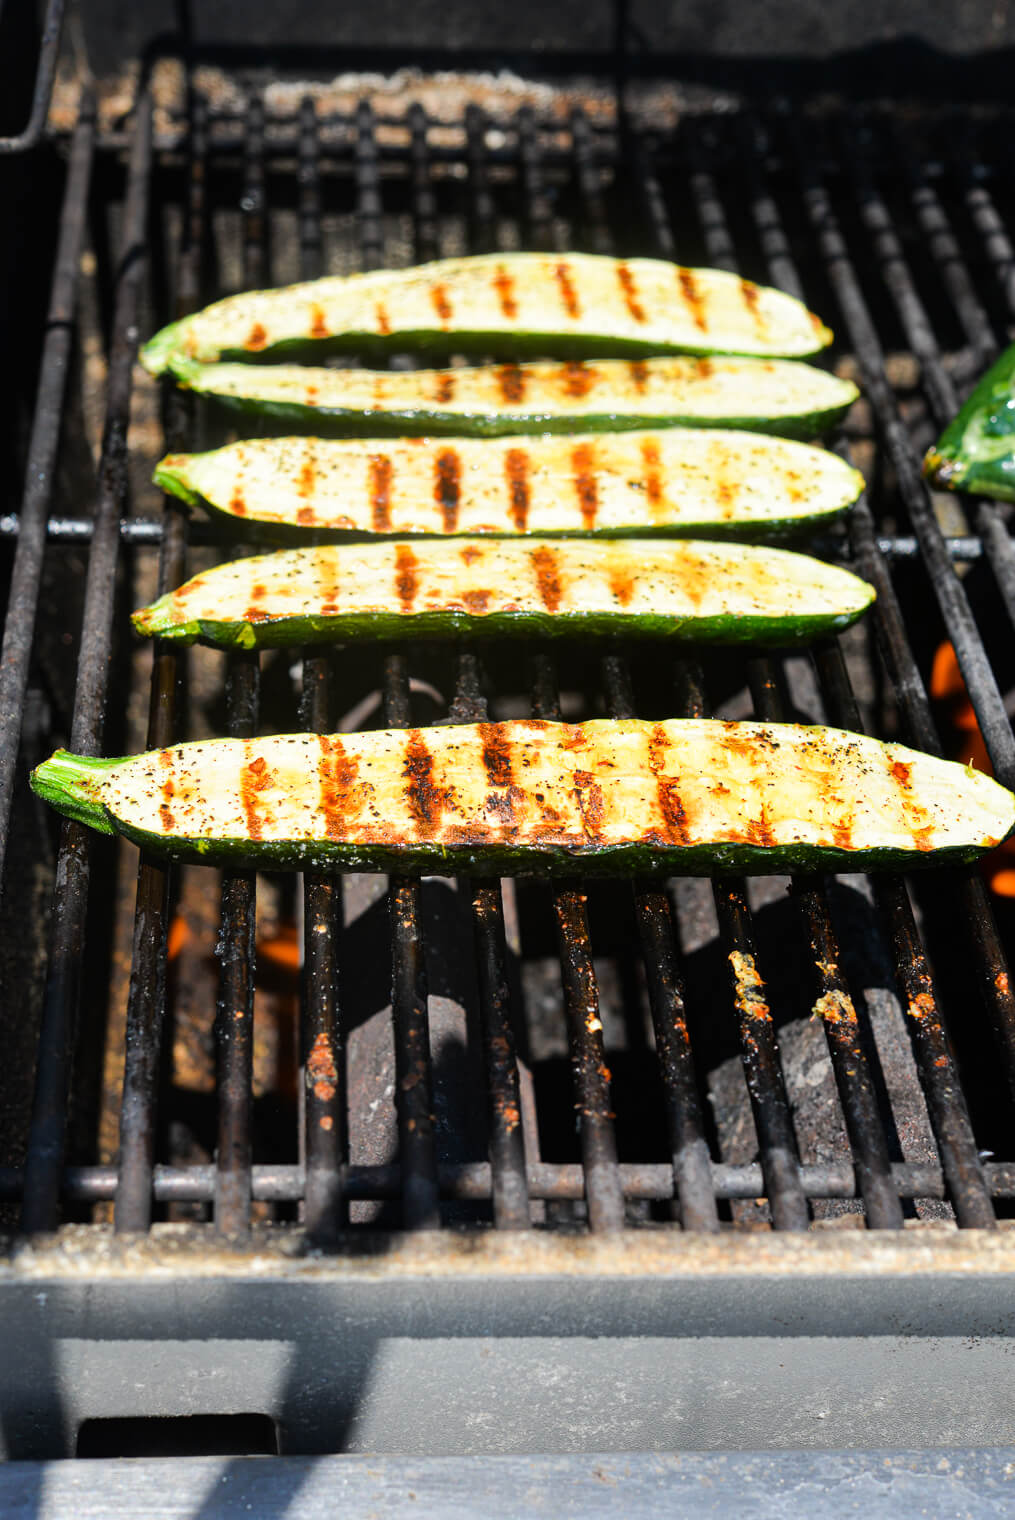 5 halves of zucchini with grill marks sitting on the grates of a gas grill